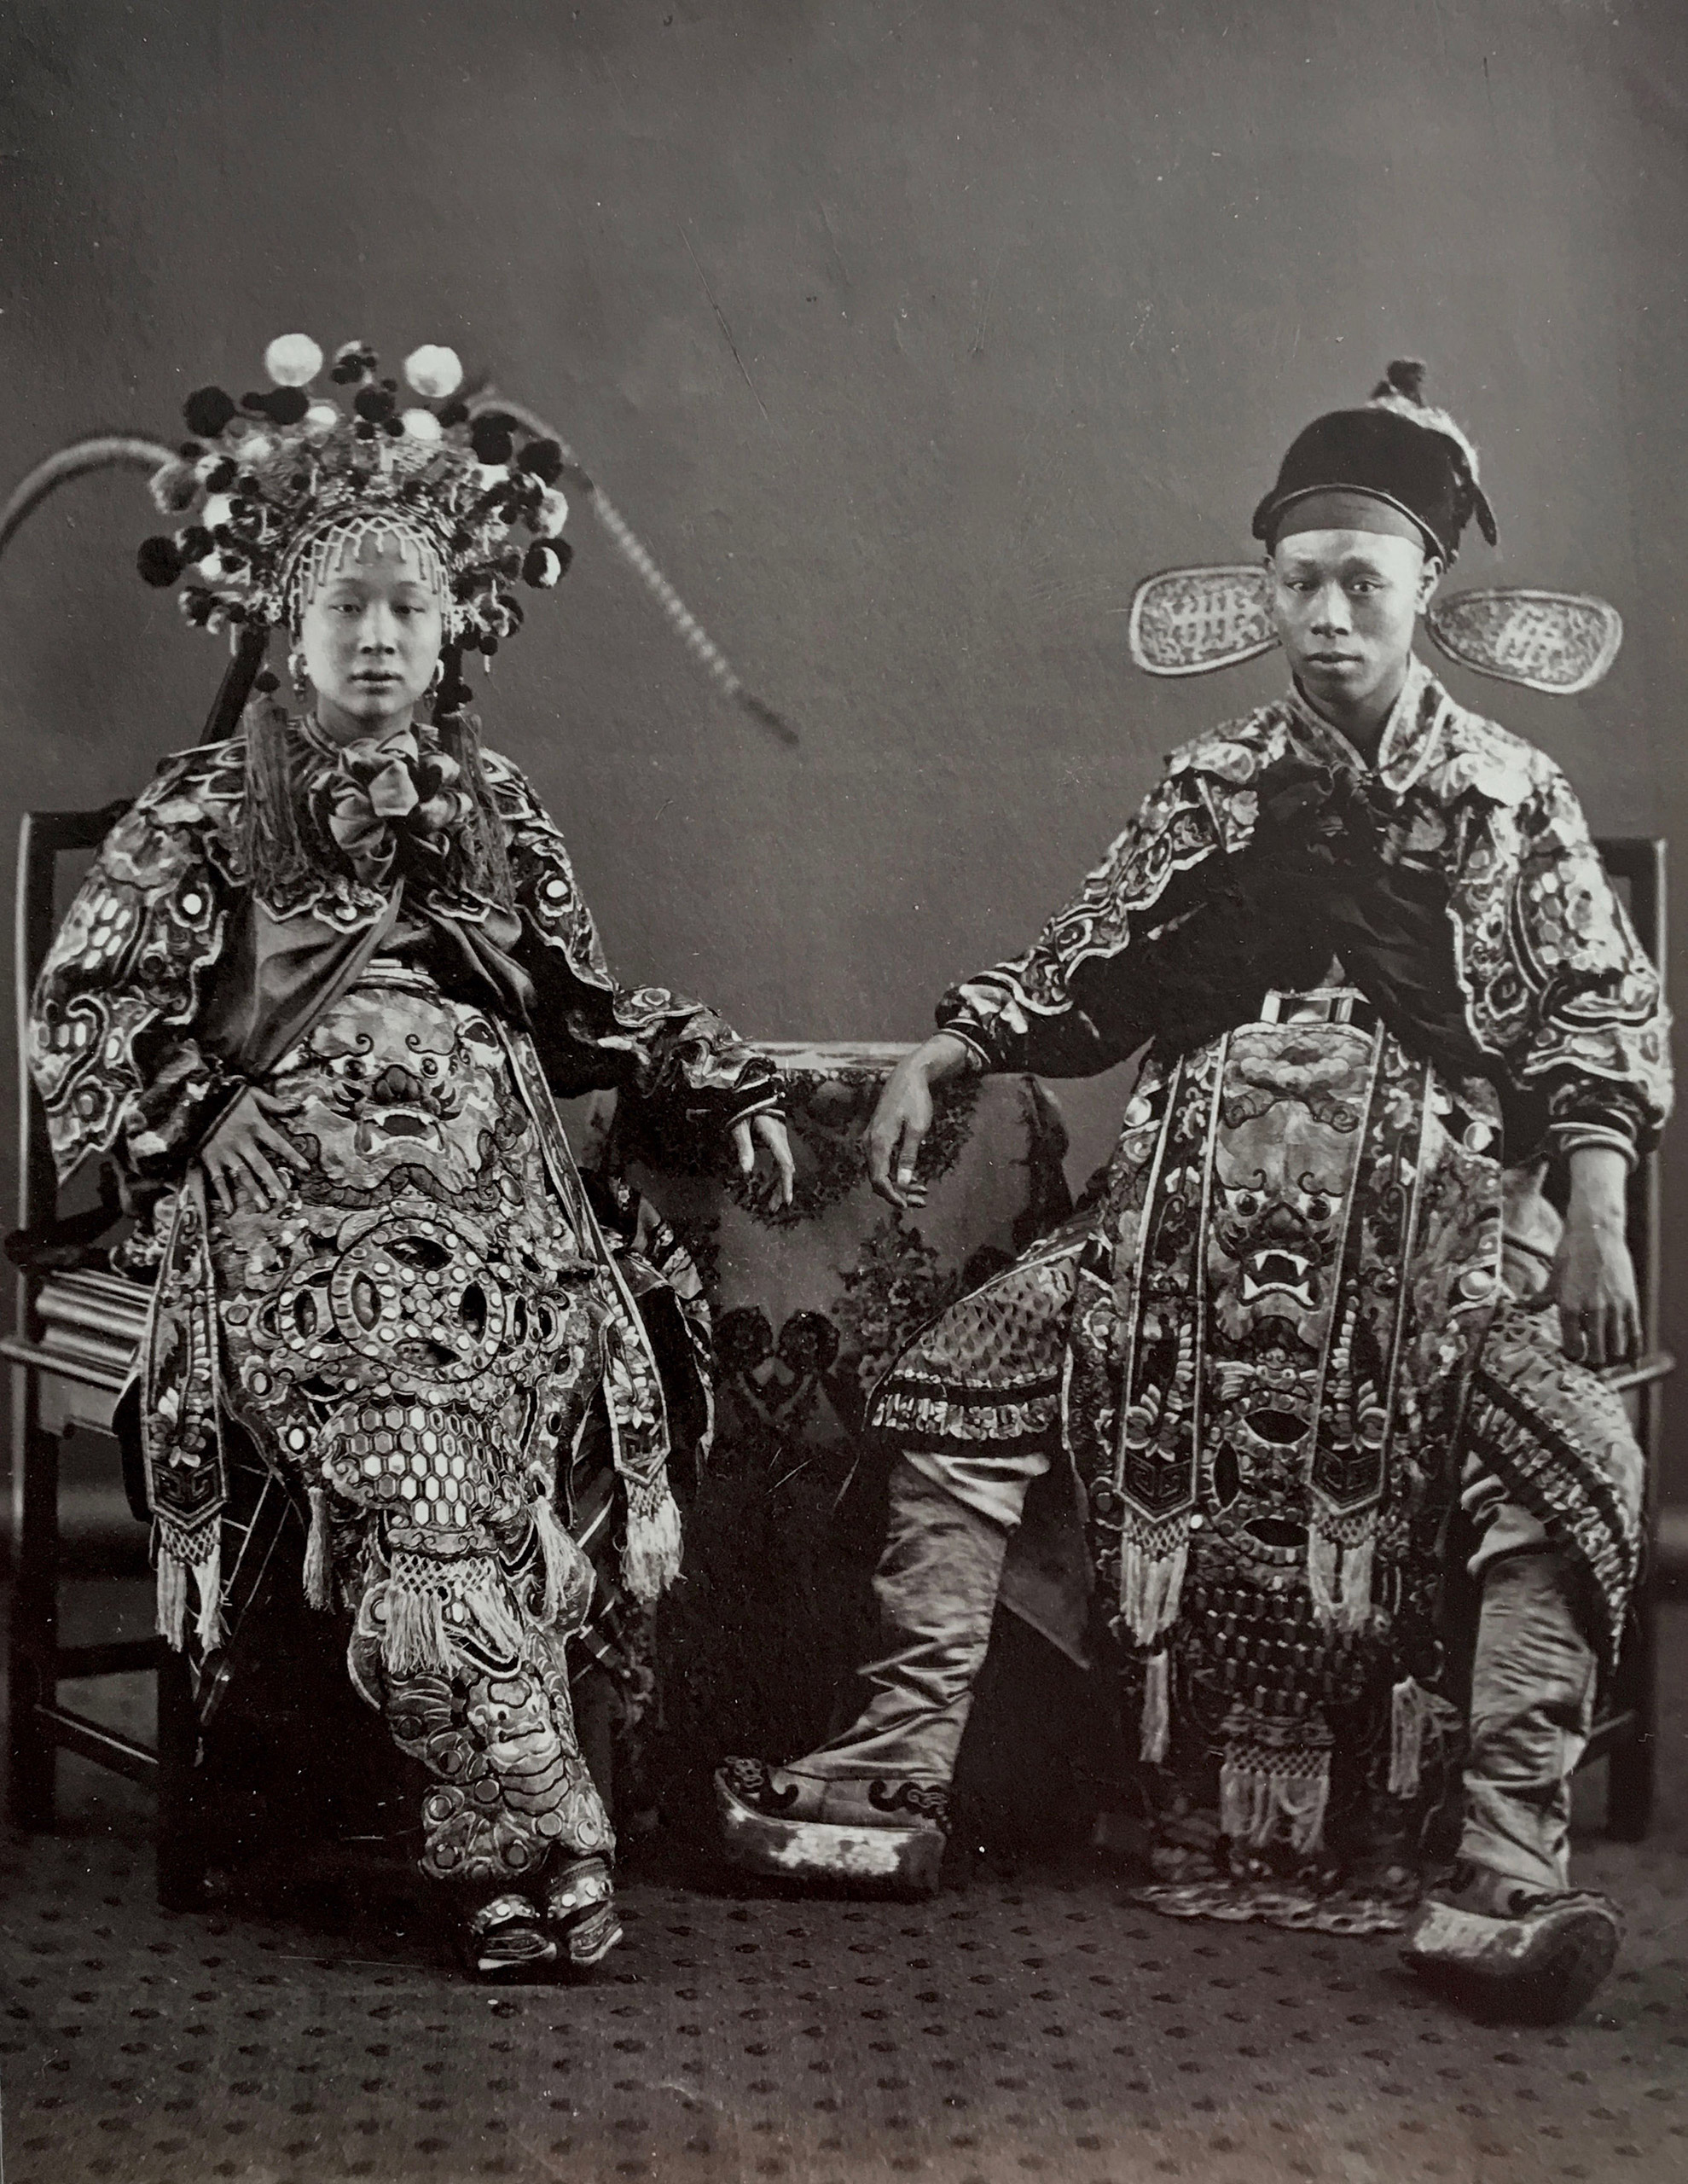 Caption from Stephan Lowentheil Collection. This striking portrait shows a Chinese actress and an actor in elaborate costumes. The costumes of Chinese theatre recalled much earlier, classical clothing made of lavishly embroidered, rich silks. Those playing villains often wore grotesque masks.